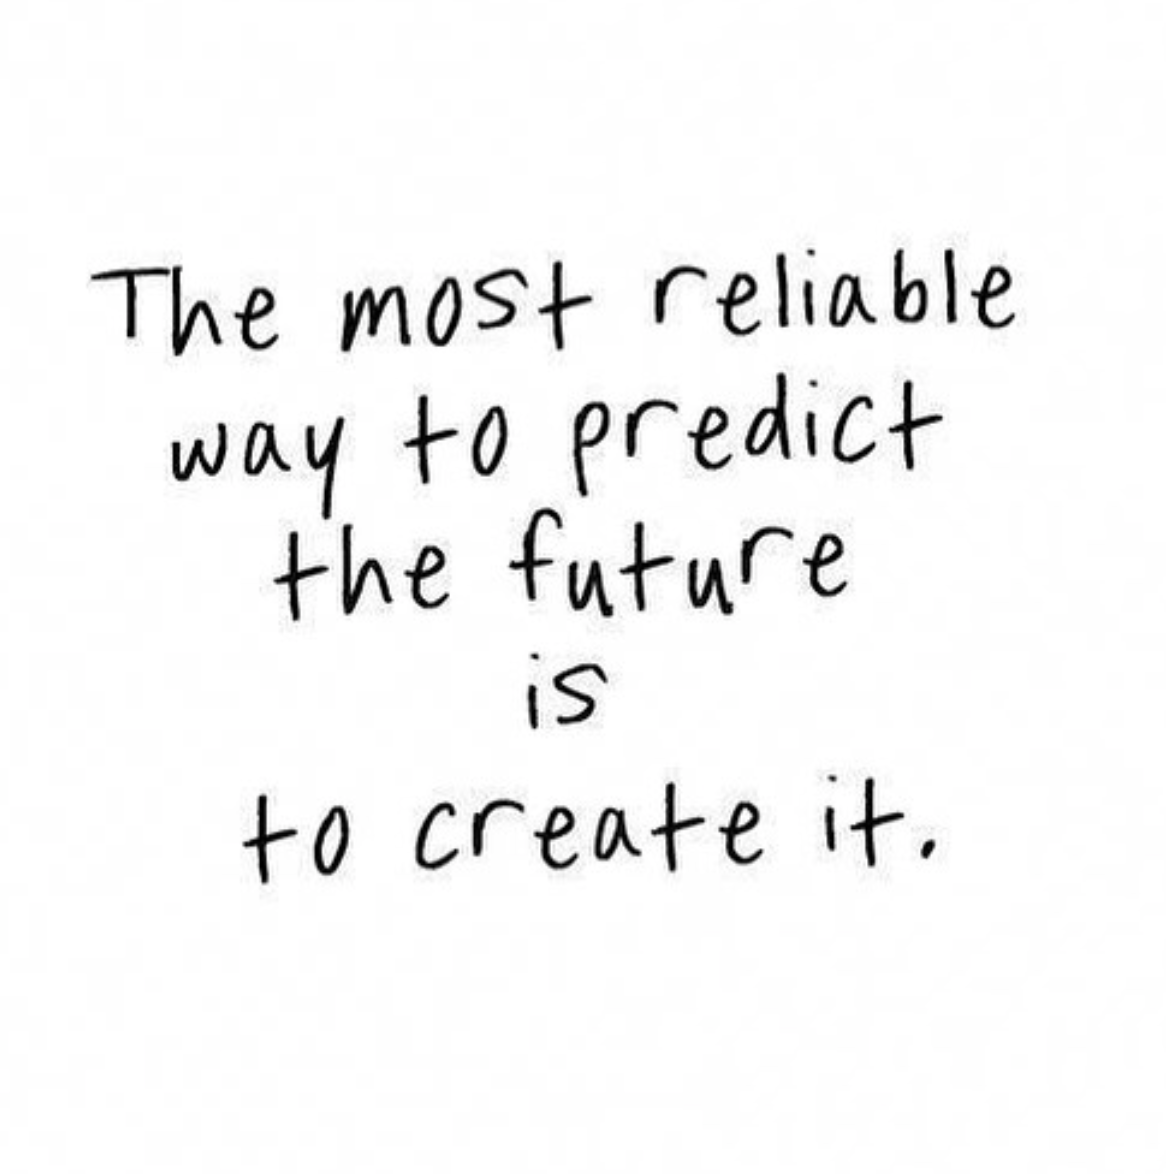 [Image] The most reliable way to predict the future is to create it.